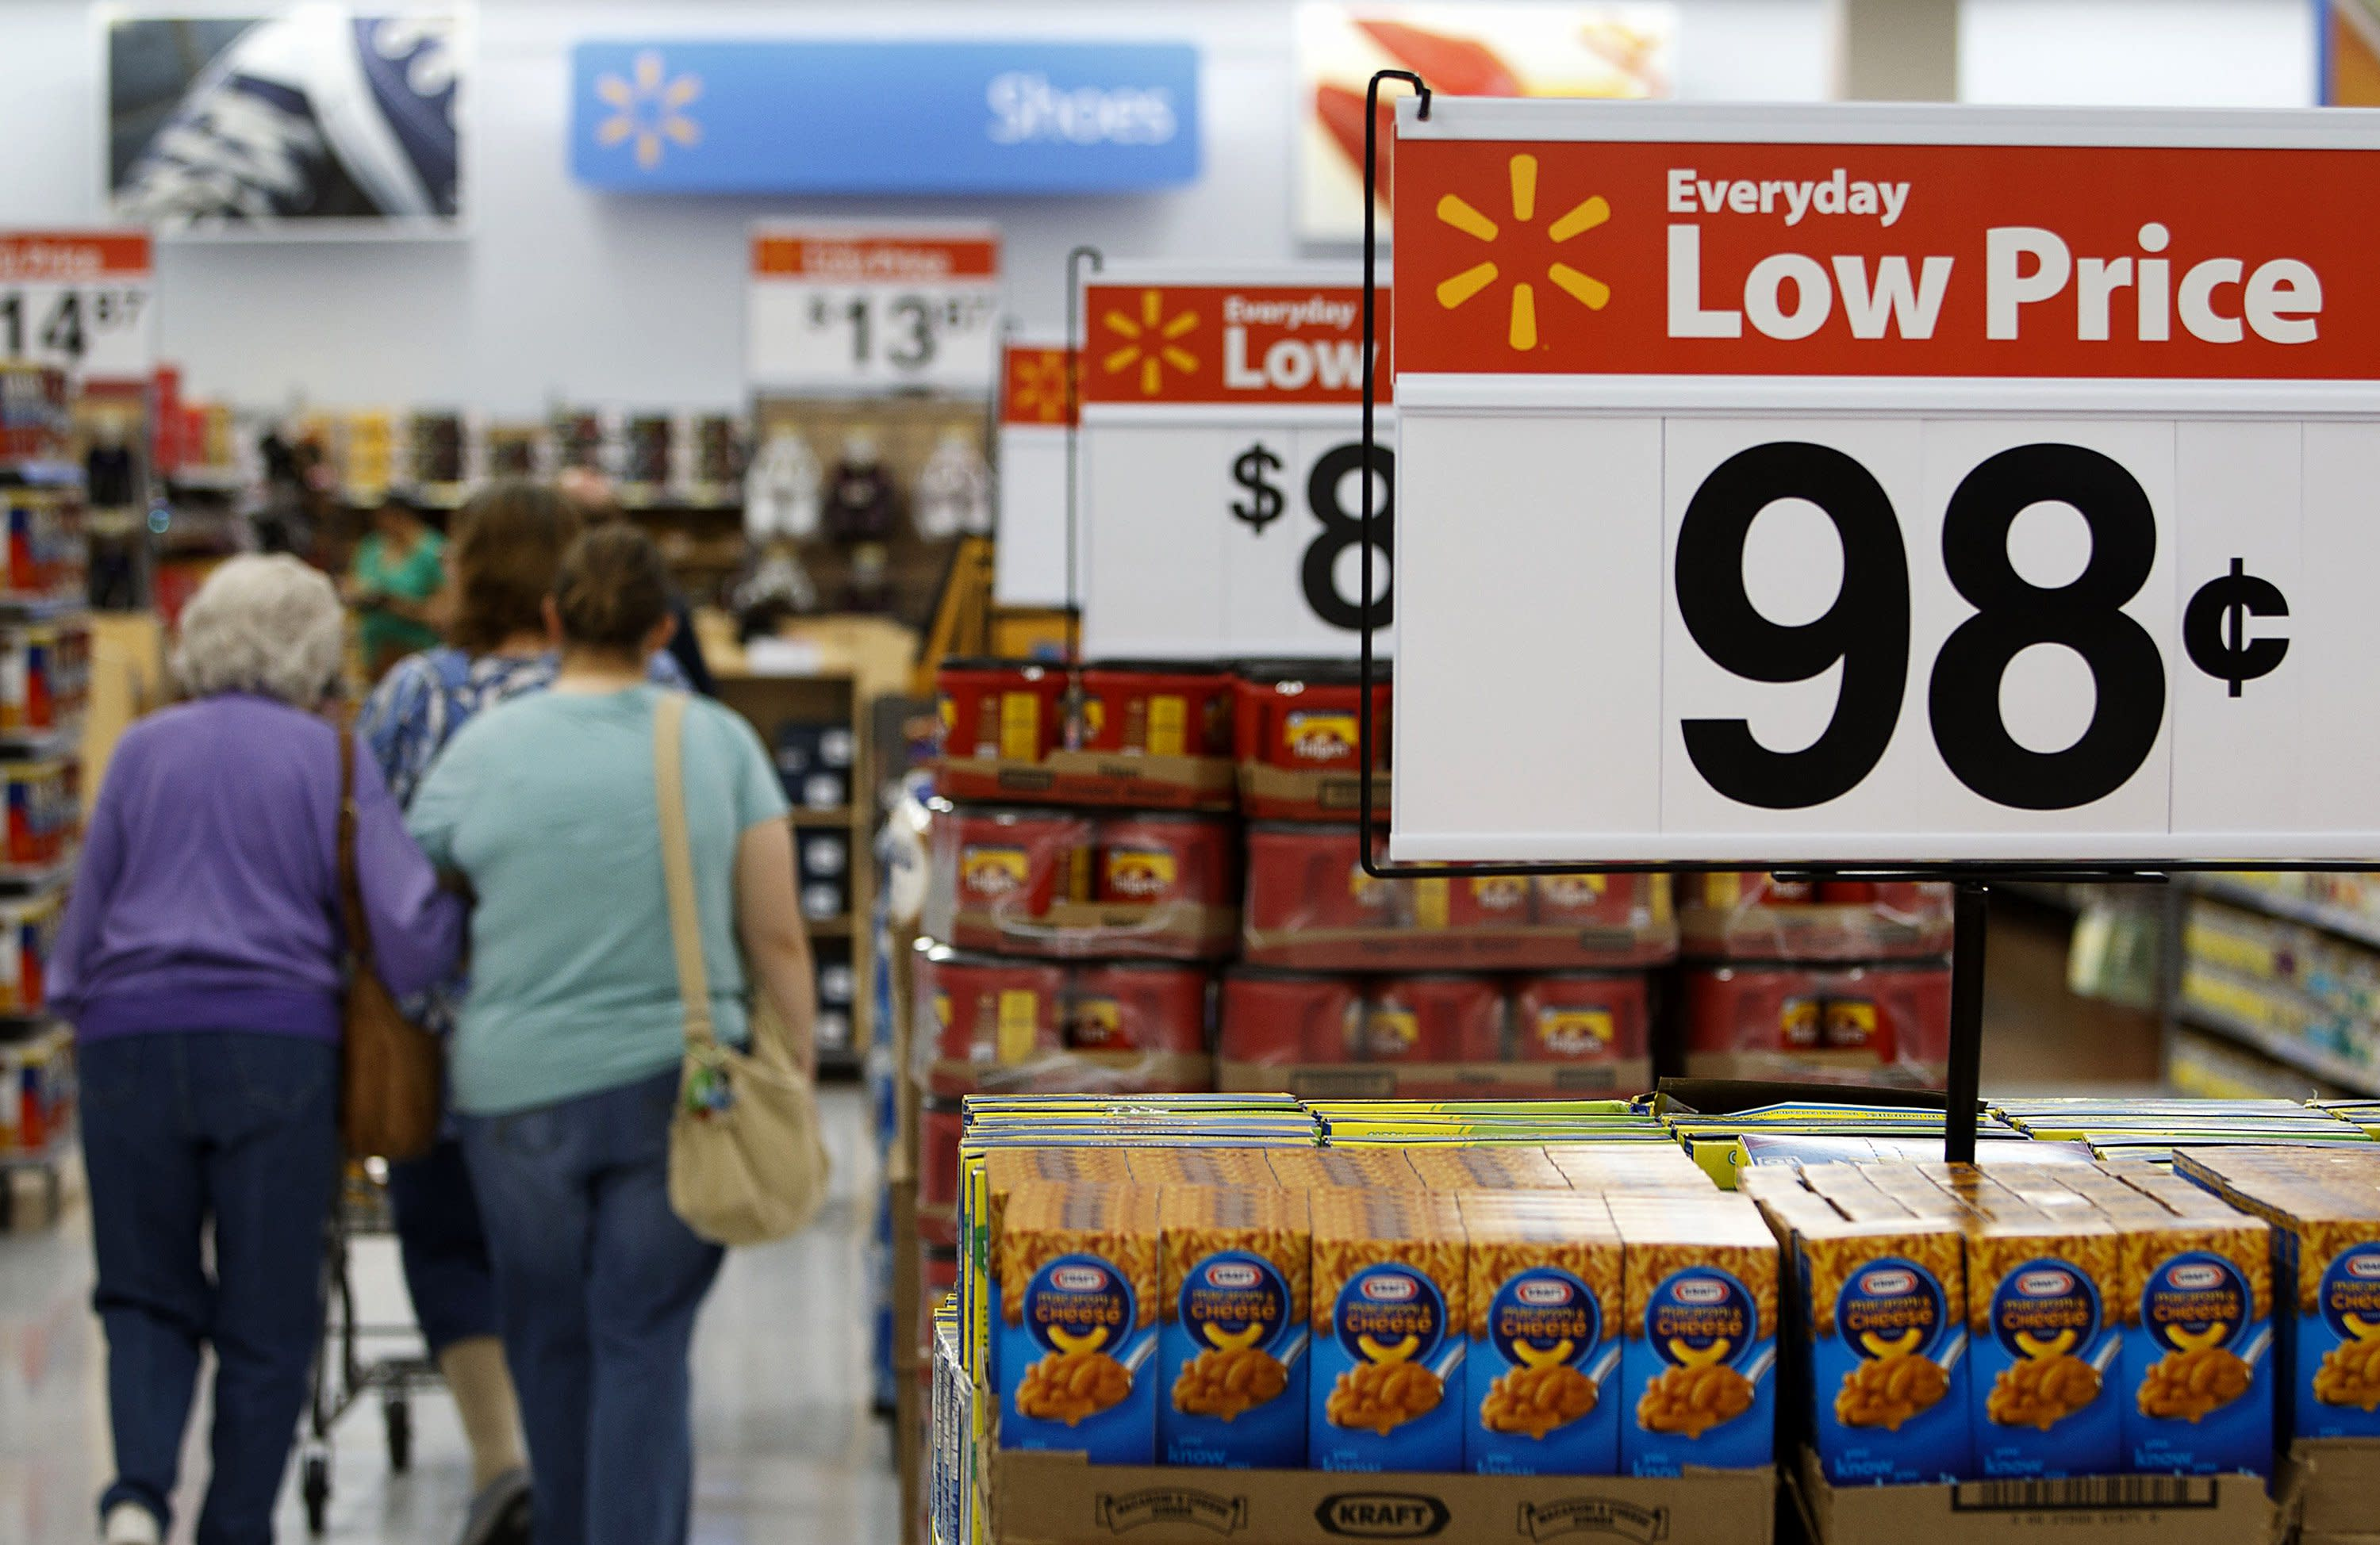 advantages of walmart s low prices everyday strategy What opportunities are forgone by wal-mart's everyday low price marketing strategy who pays the costs of wal-mart's wal-mart's low wages and health benefits.